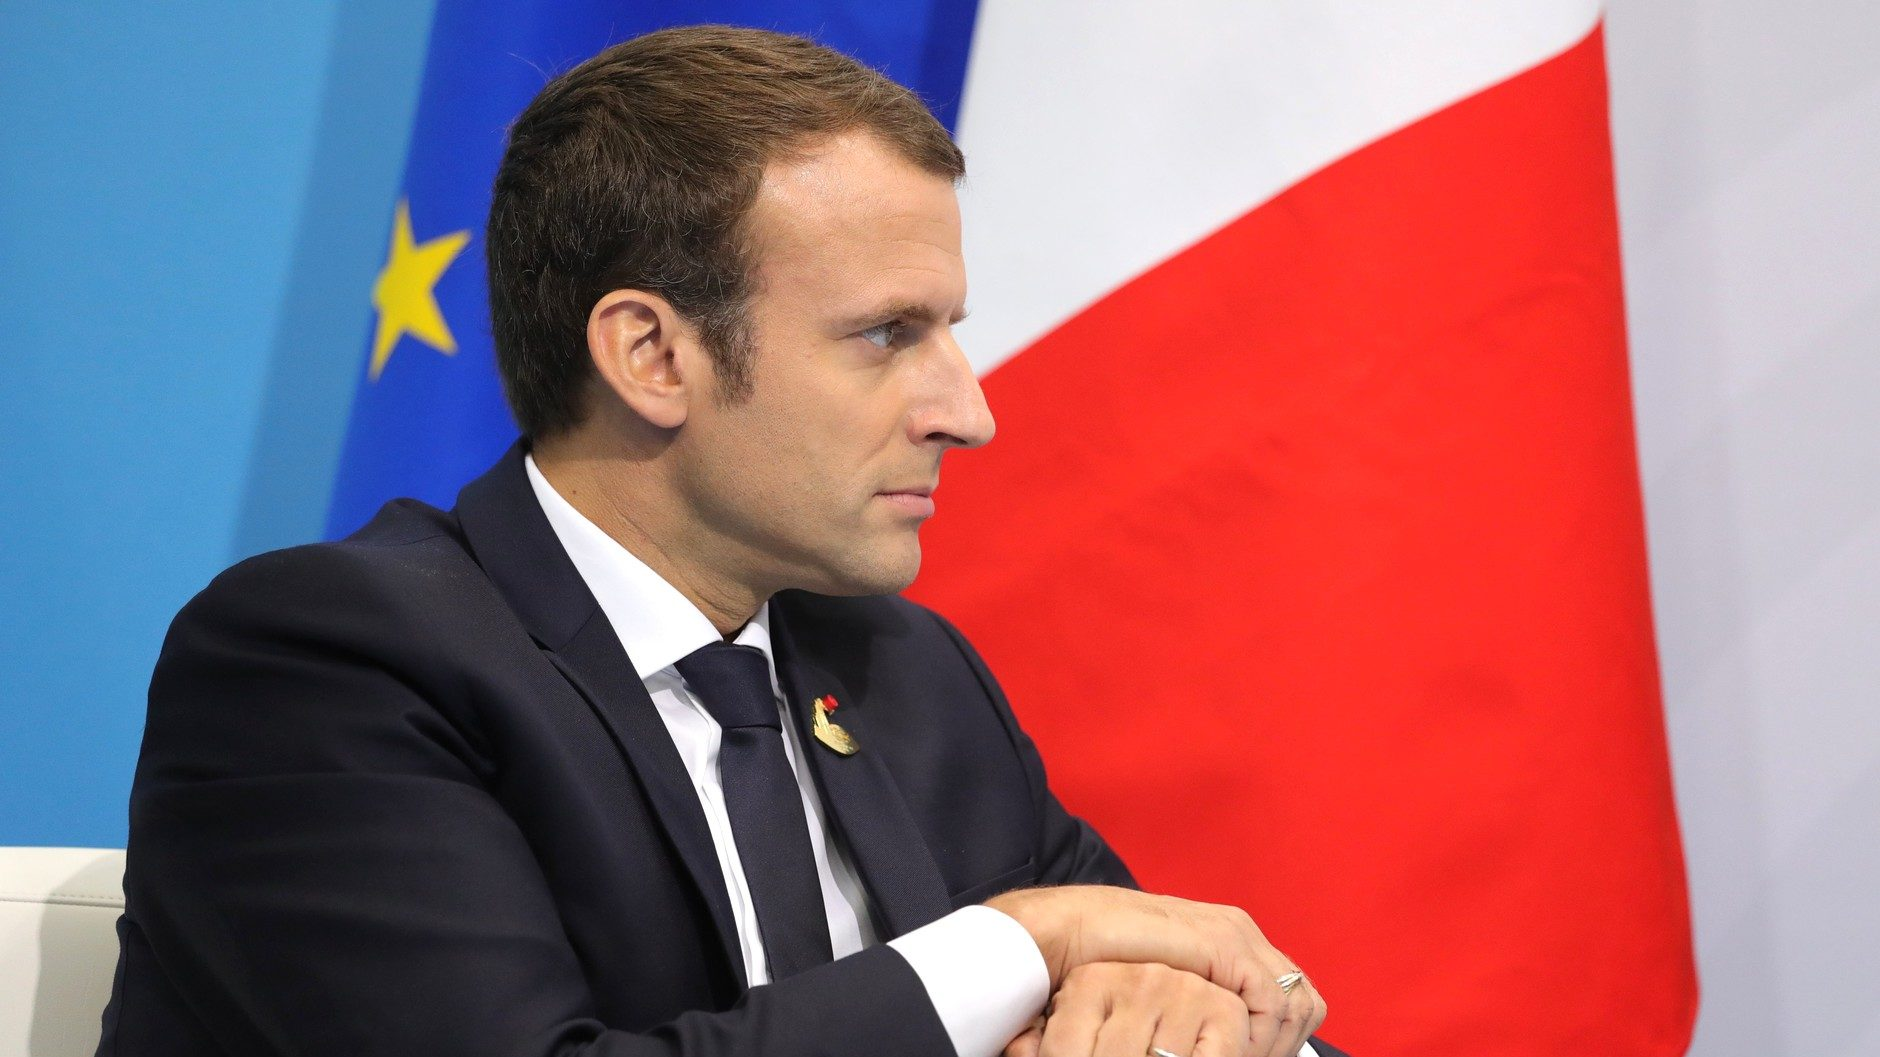 Analysis: Macron's Chances of Returning France to Glory in Mideast and Beyond